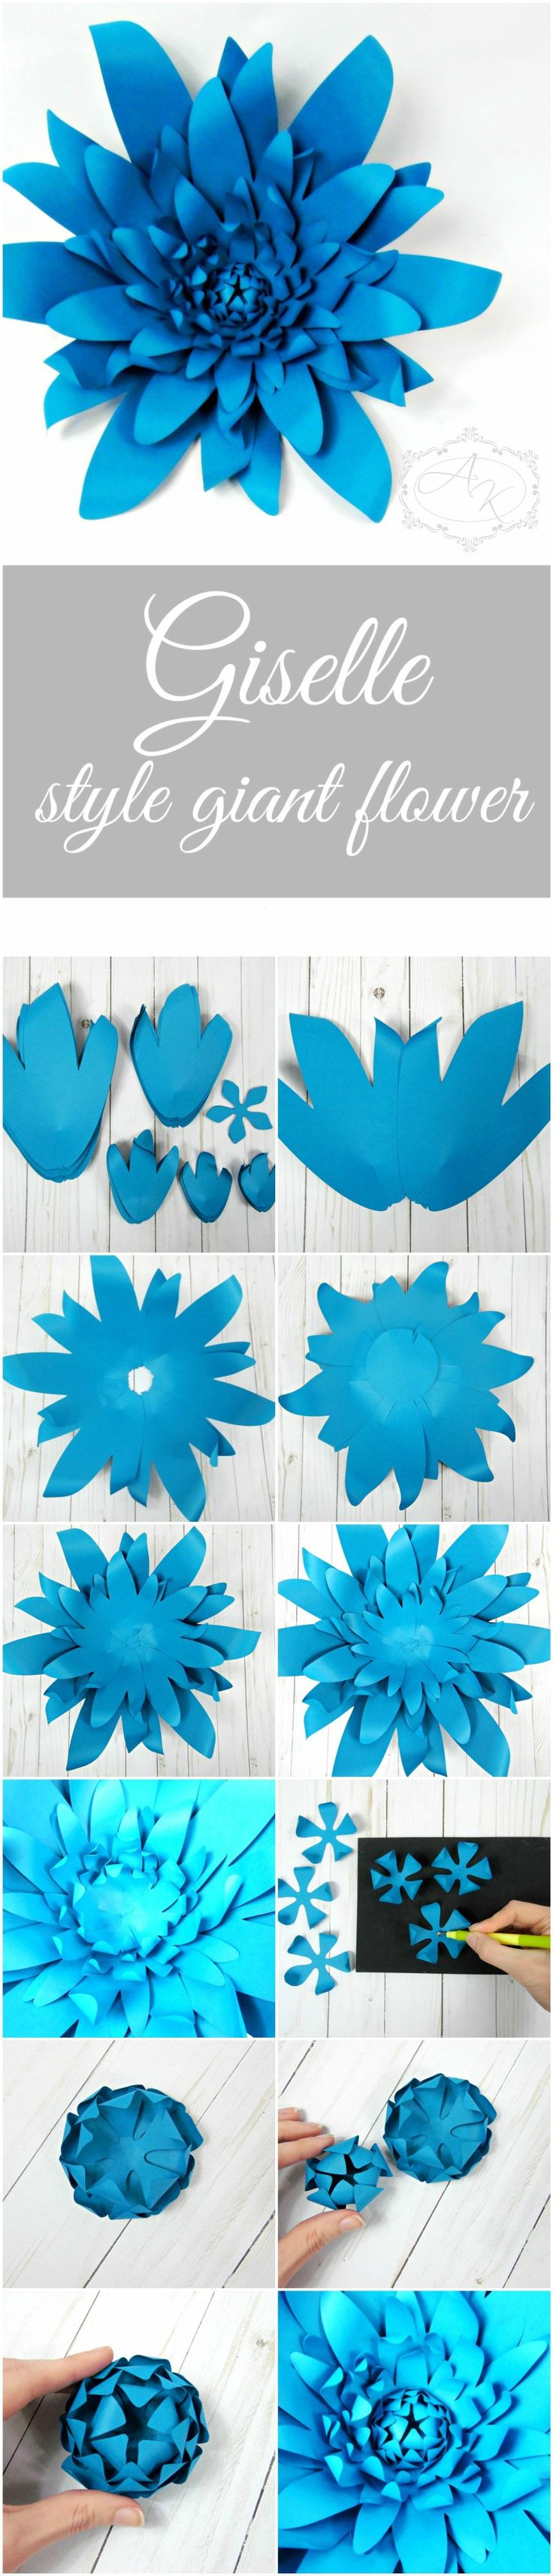 100 ideas to try about flowers crepe paper template and paper giant diy paper flower templates with instructions large backdrop paper flowers diy wedding decor dhlflorist Image collections